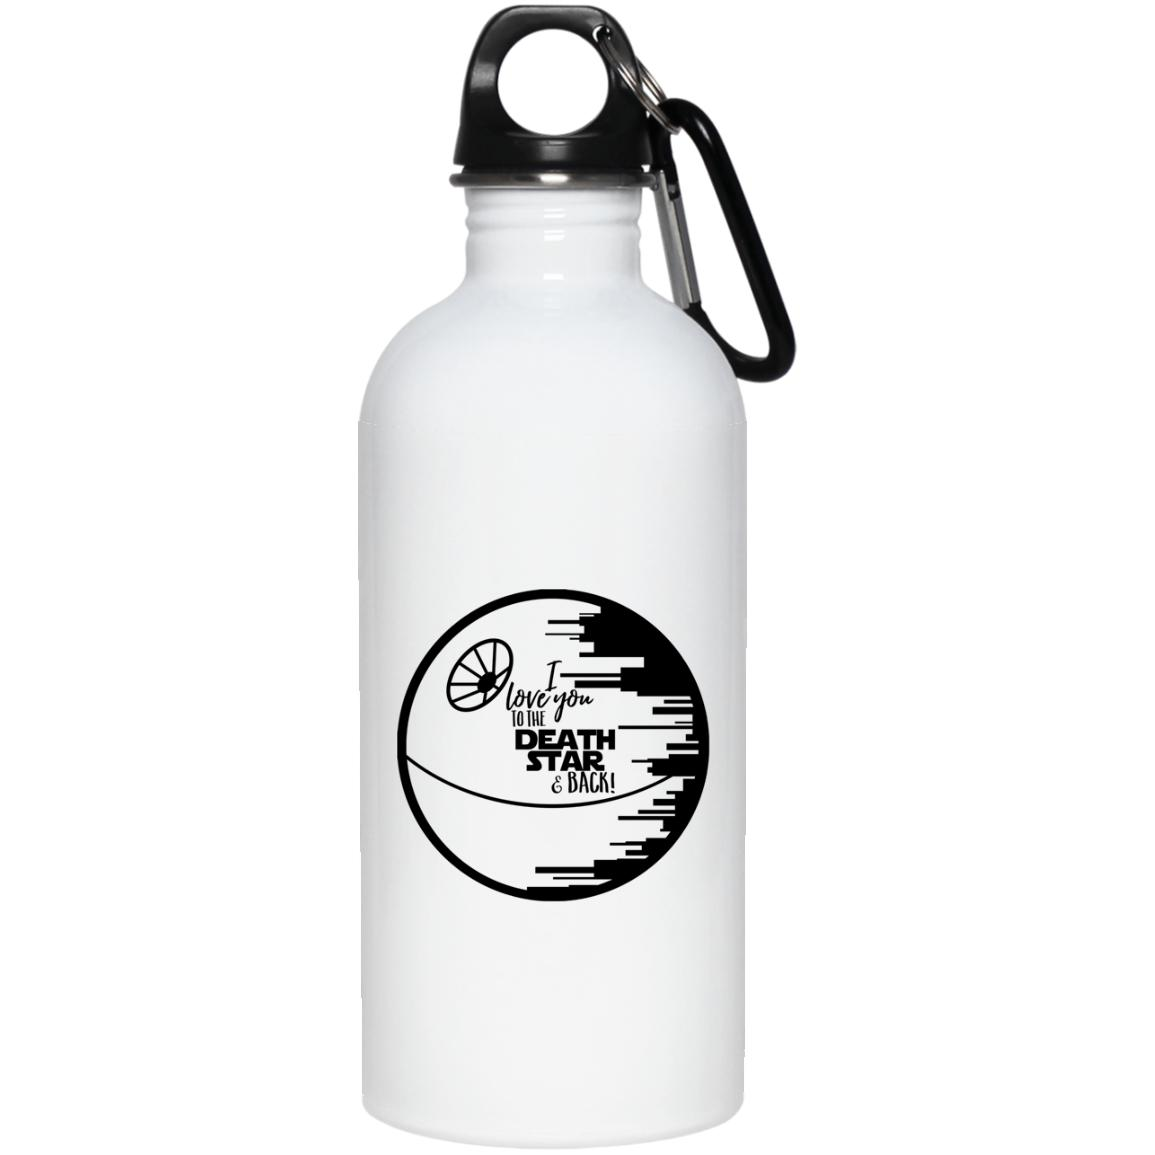 I Love You To the Death Star & Back 20 oz. Stainless Steel Water Bottle